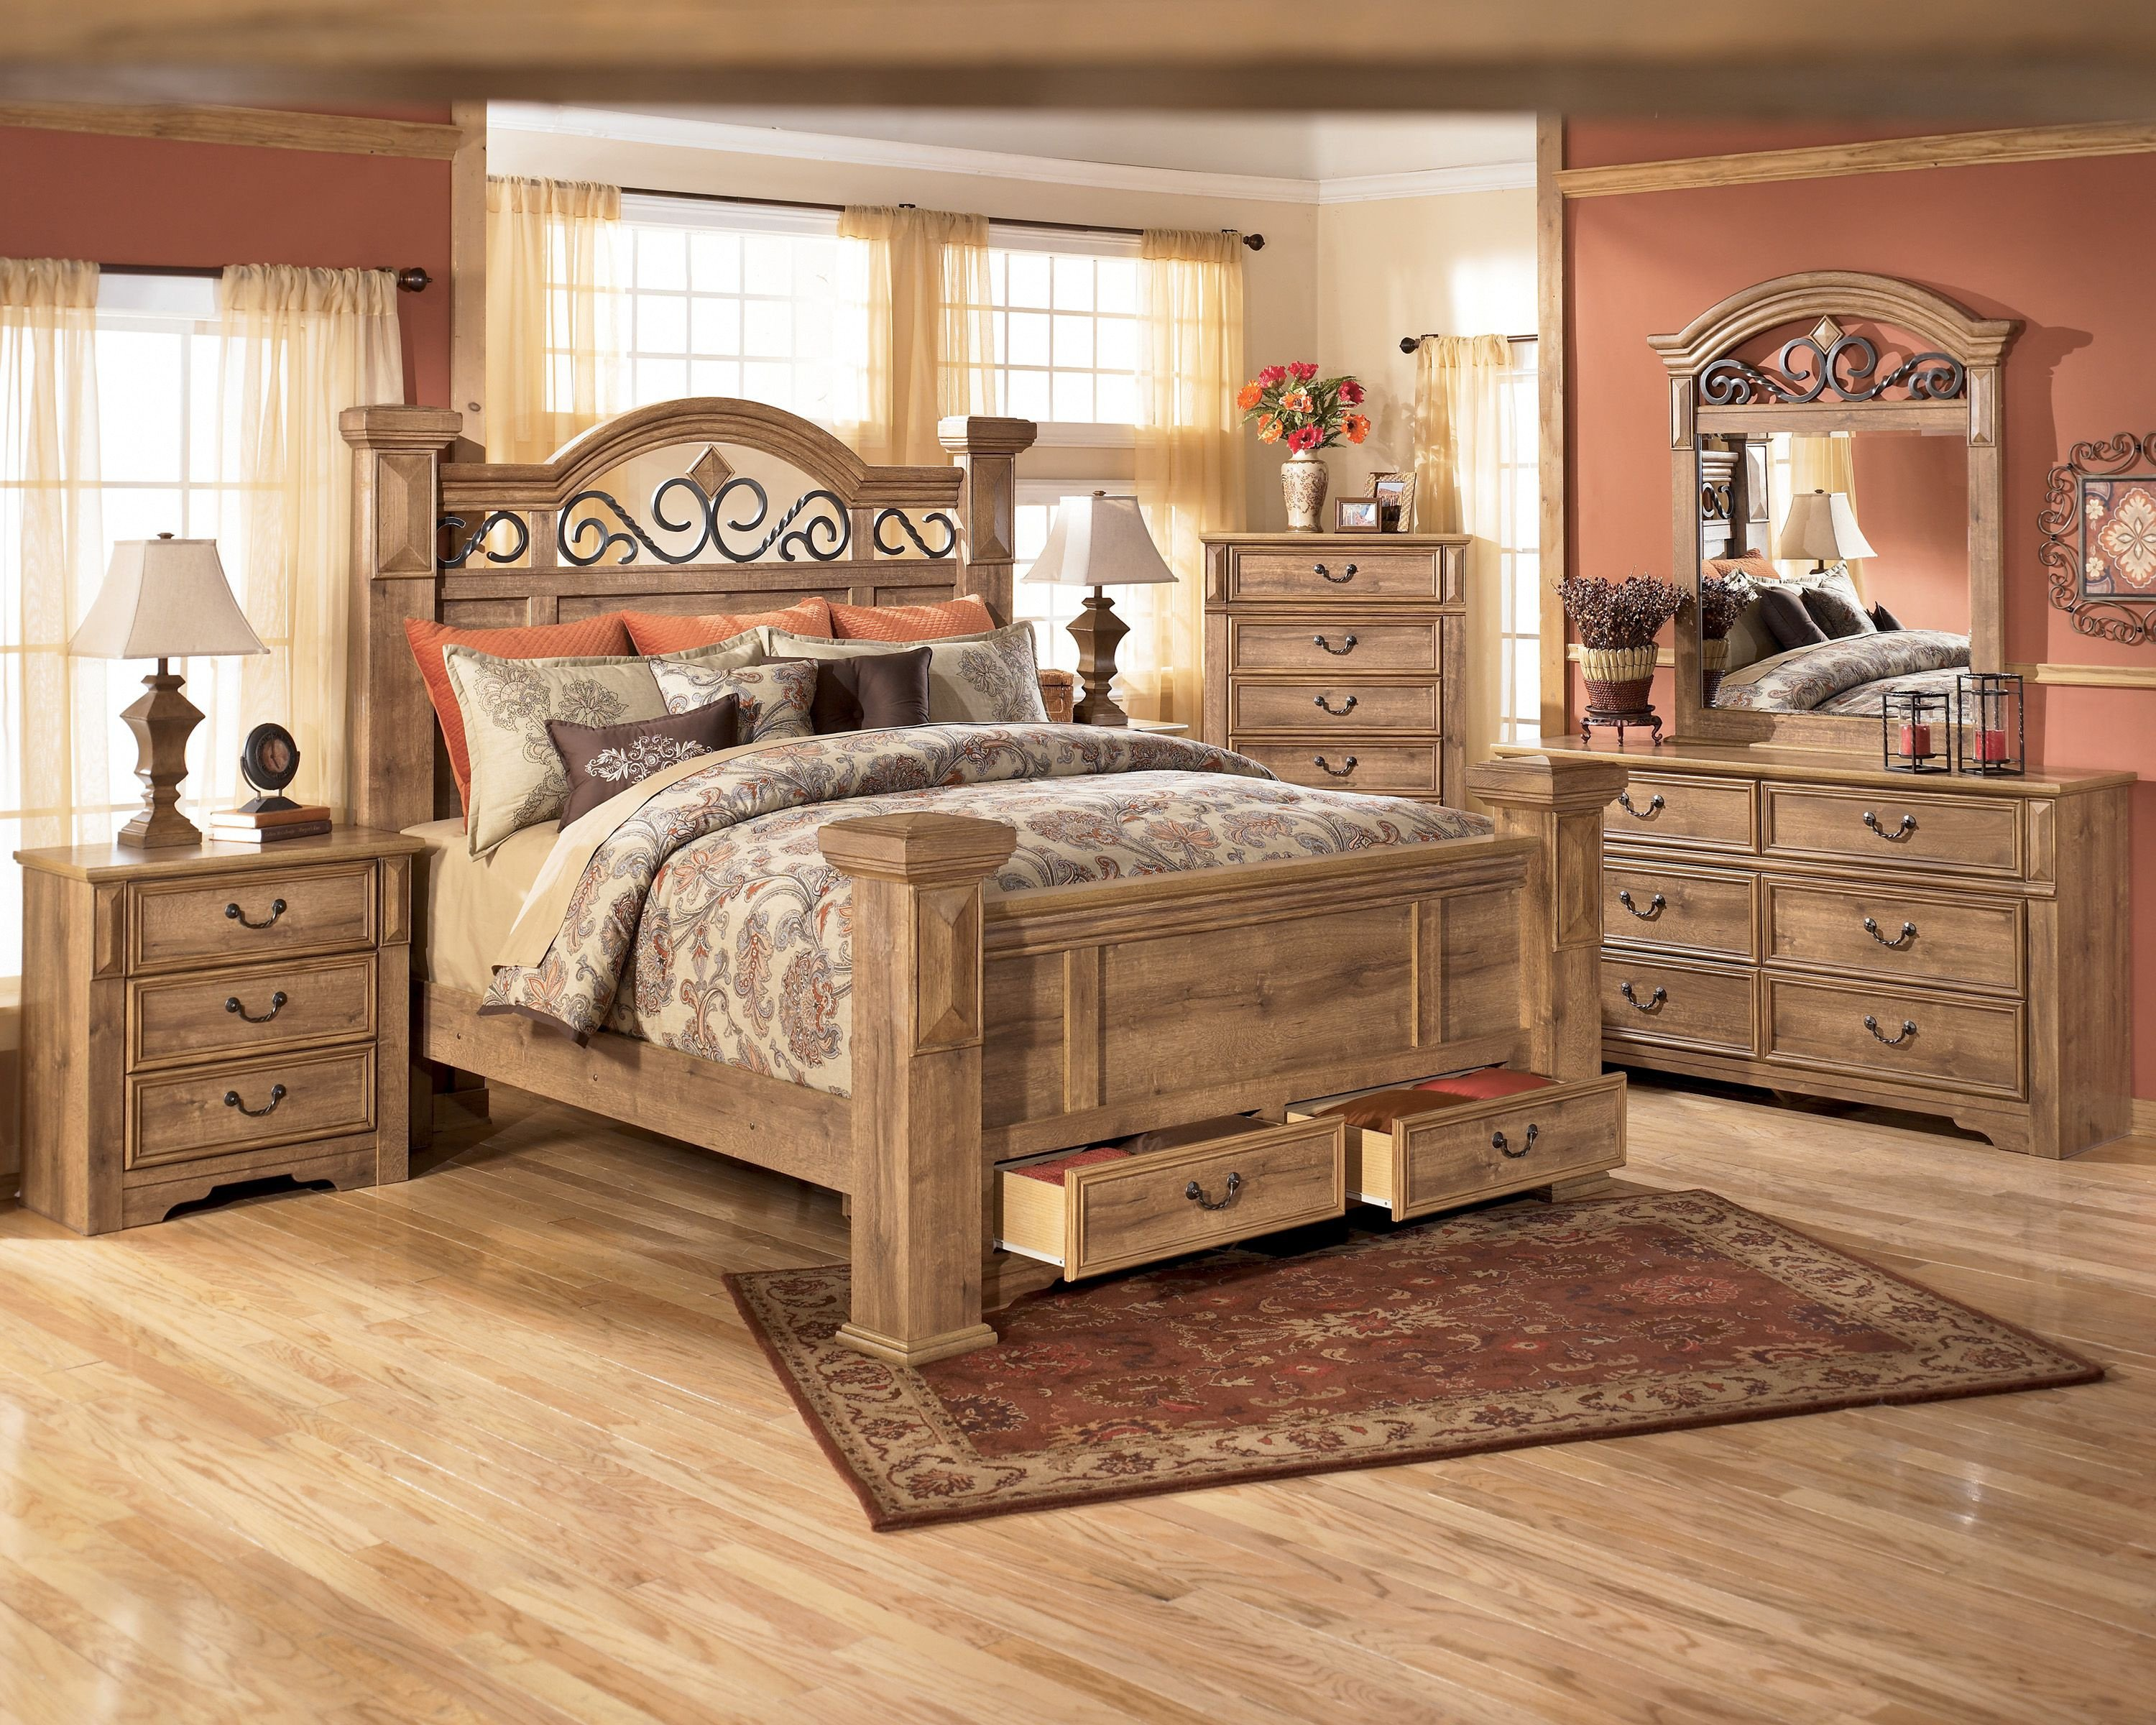 King Size Bedroom Suites Beautiful Awesome Awesome Full Size Bed Set 89 Home Decorating